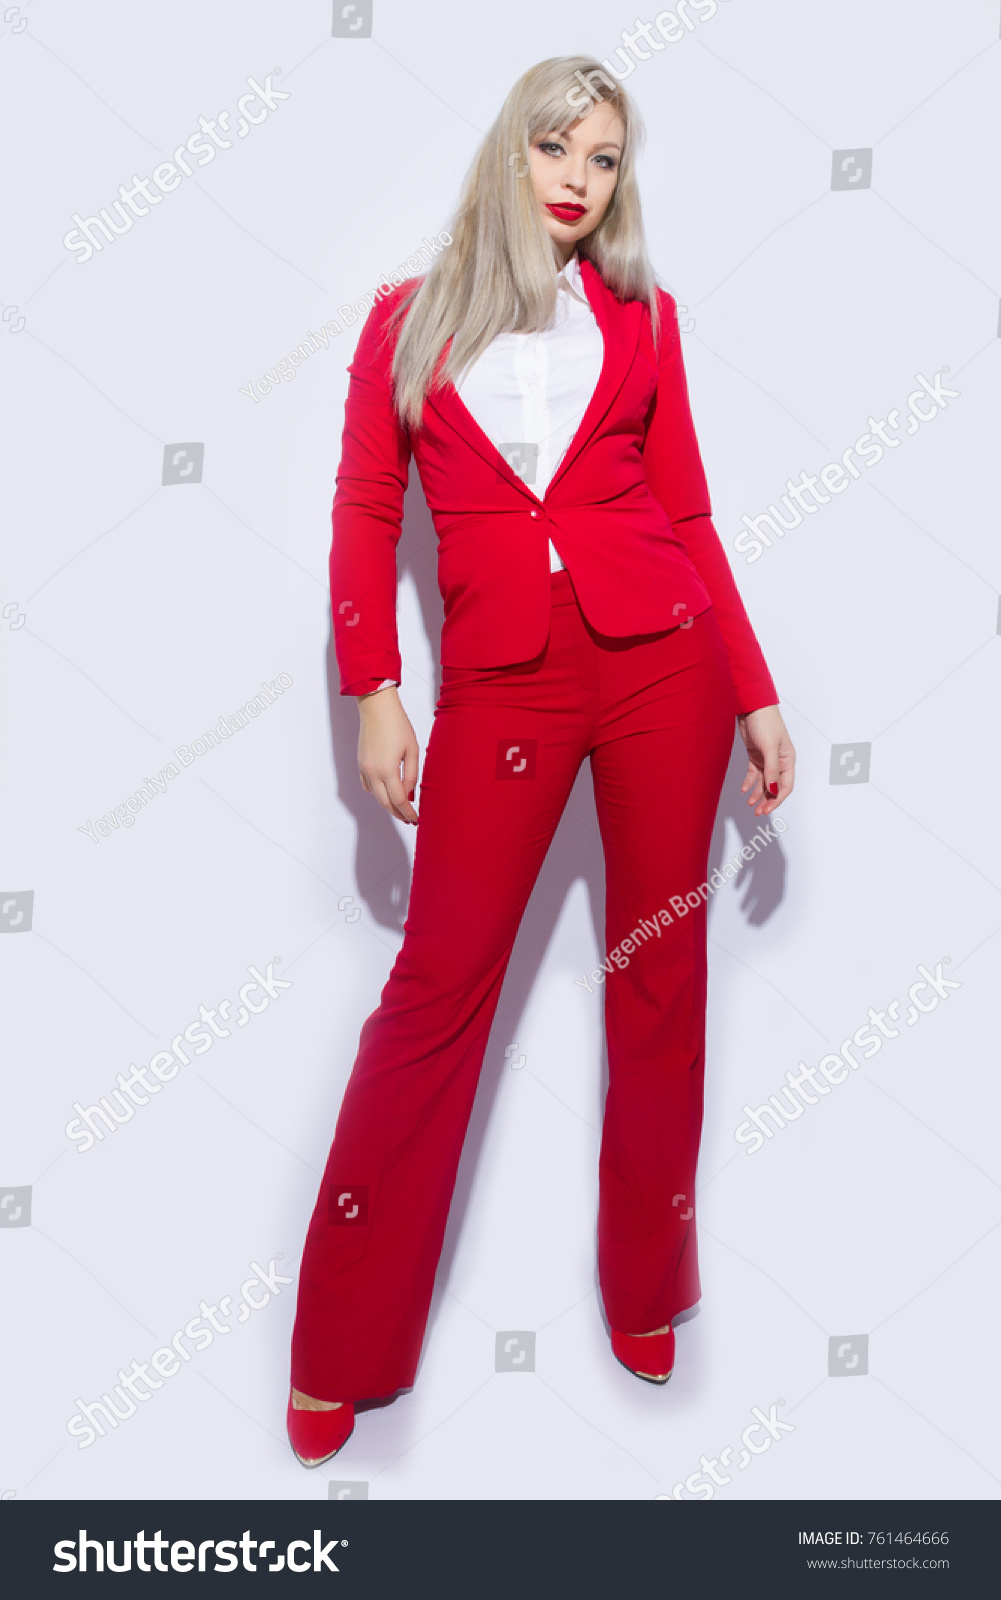 Watch - How to pants red wear in spring video